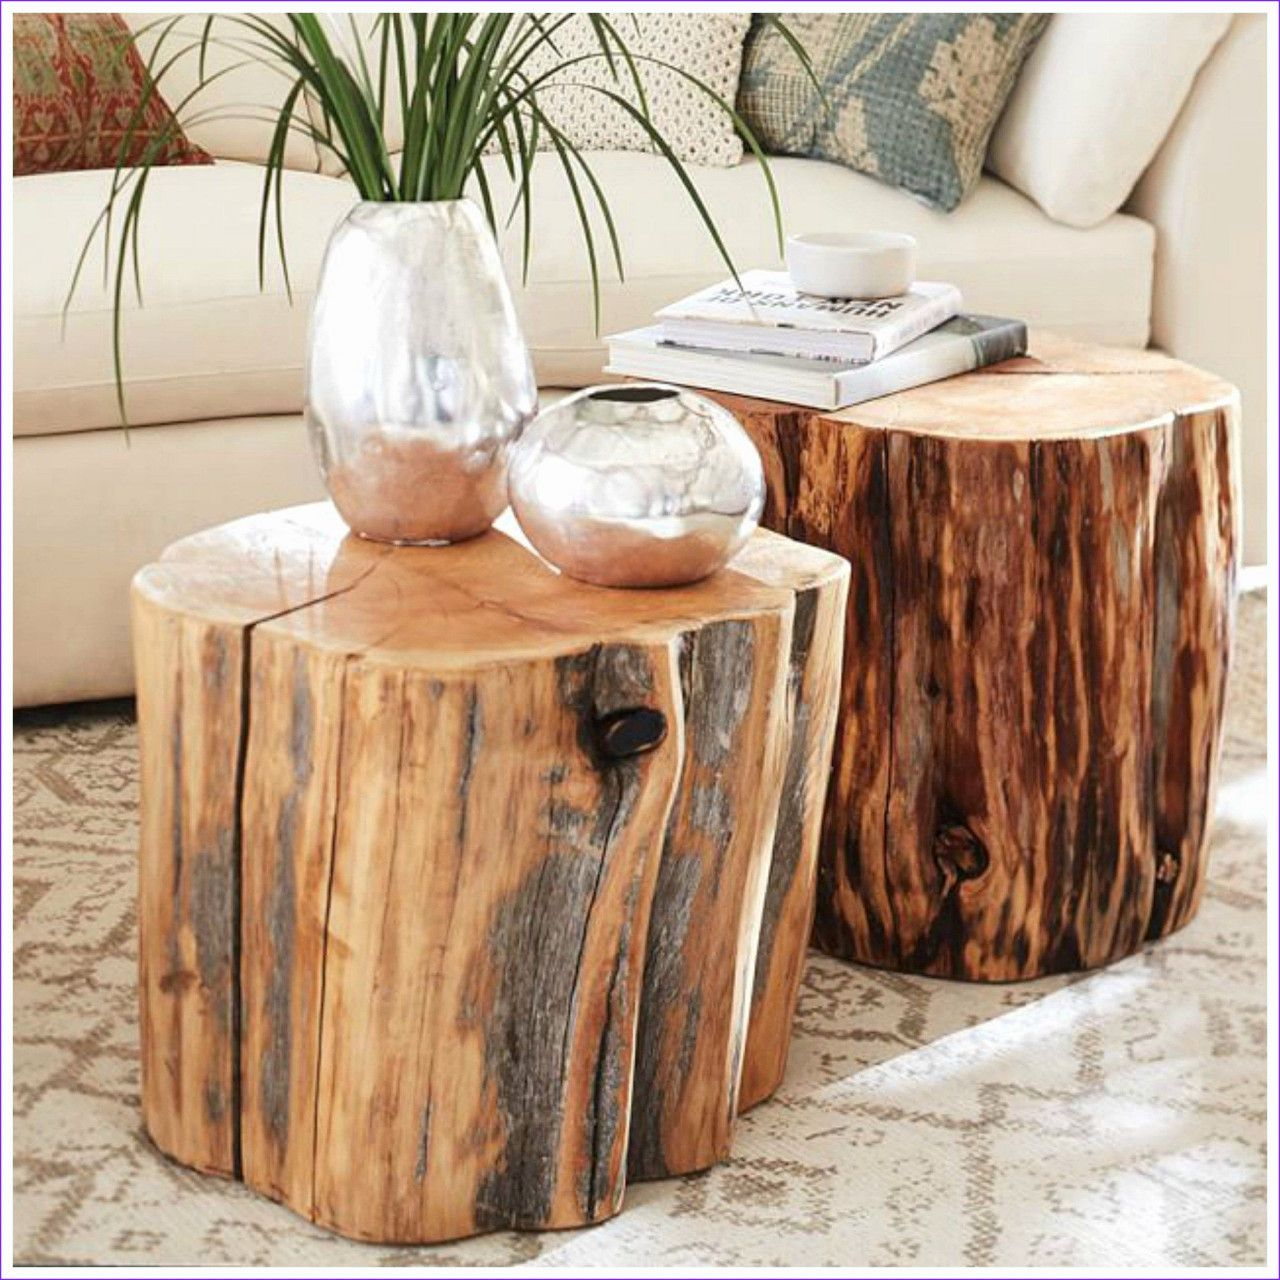 70 Luxury Tree Trunk Coffee Table for Sale 2018 ...